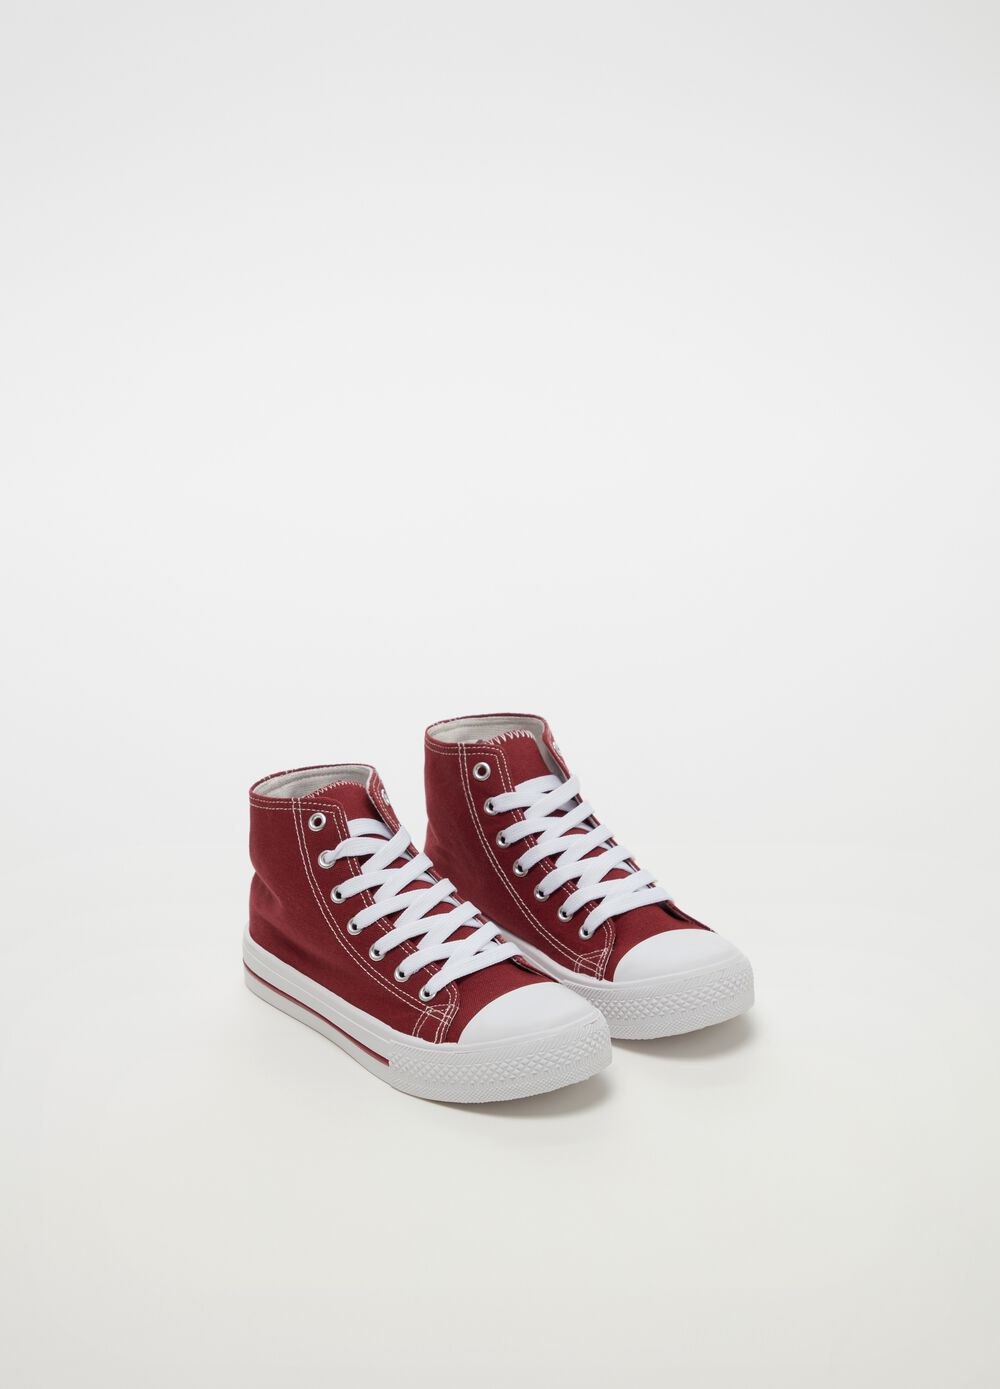 High-top sneakers with striped insert on the sole